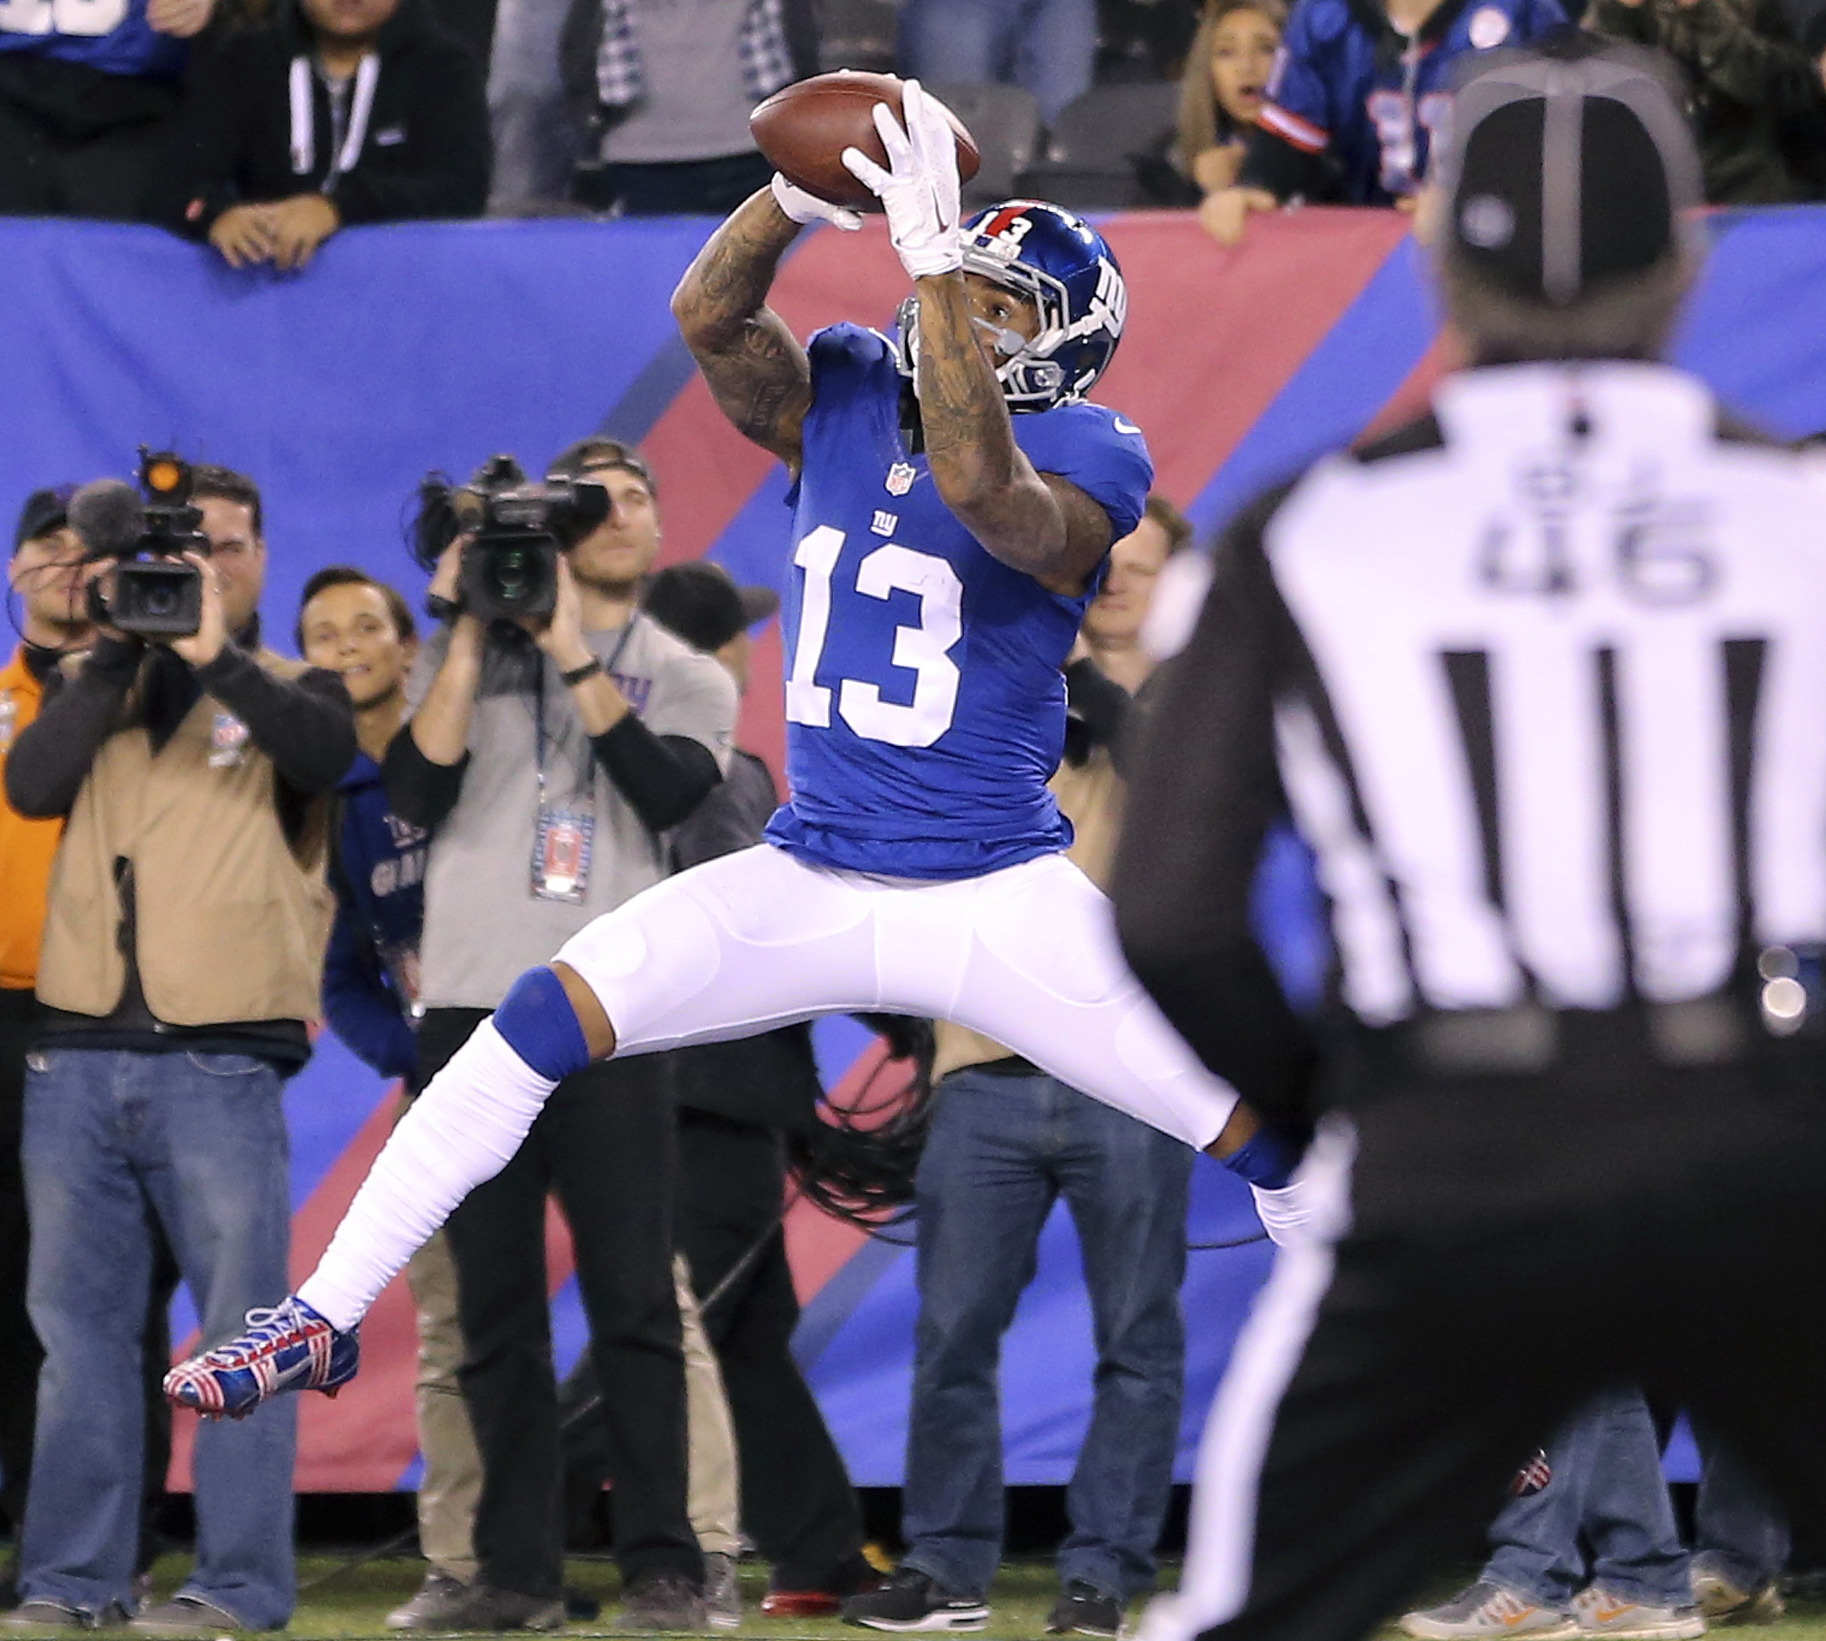 FILE - In this Nov. 14, 2016, file photo, New York Giants wide receiver Odell Beckham Jr. (13) catches a touchdown pass against the Cincinnati Bengals during the second quarter of an NFL football game, in East Rutherford, N.J. There's plenty at stake when